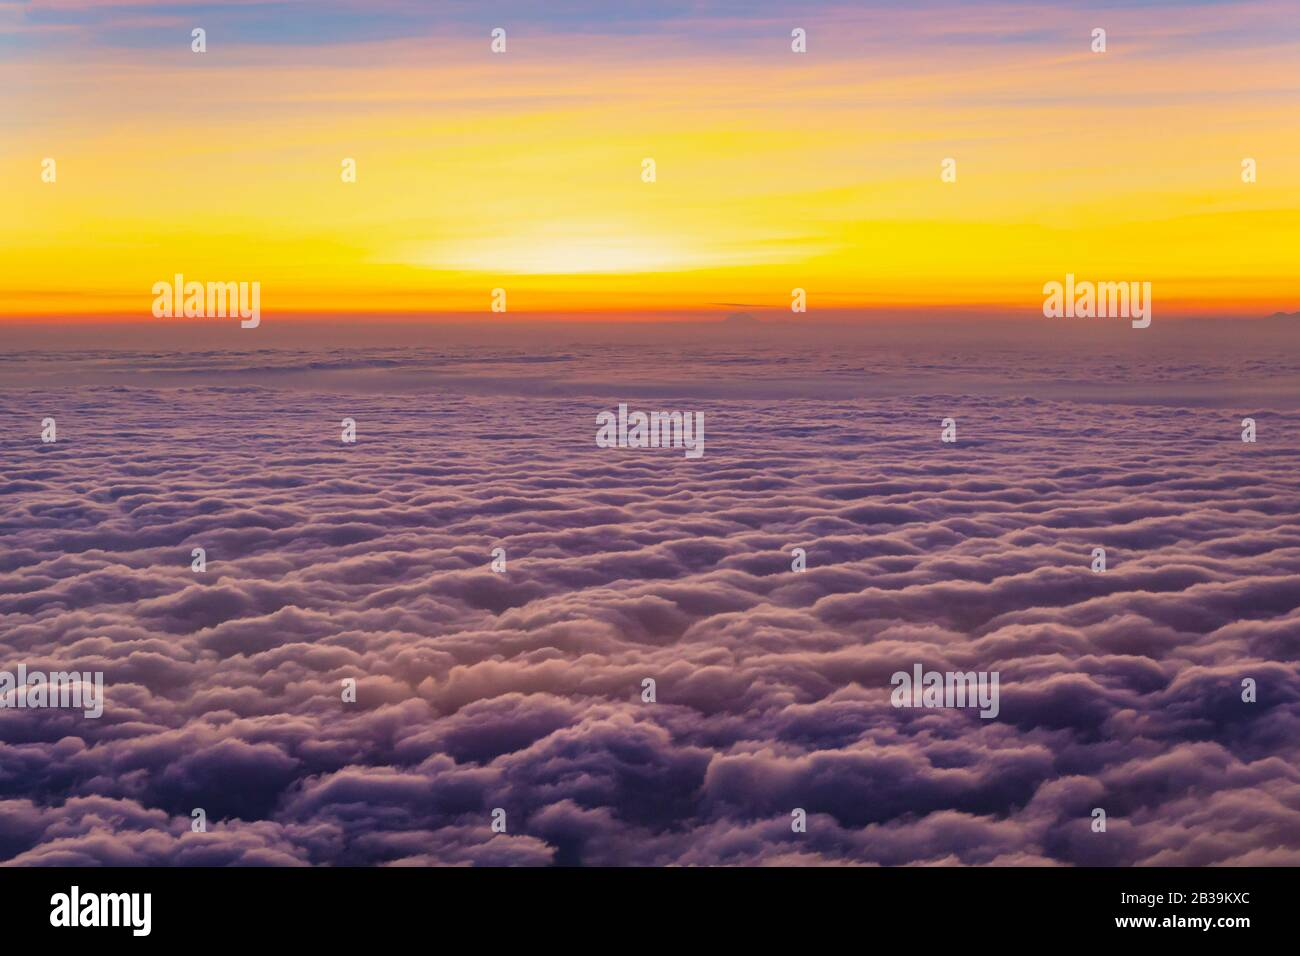 Beautiful And Colorful Sunset Above Purple Color Clouds Looking Through An Airplane Window Stock Photo Alamy